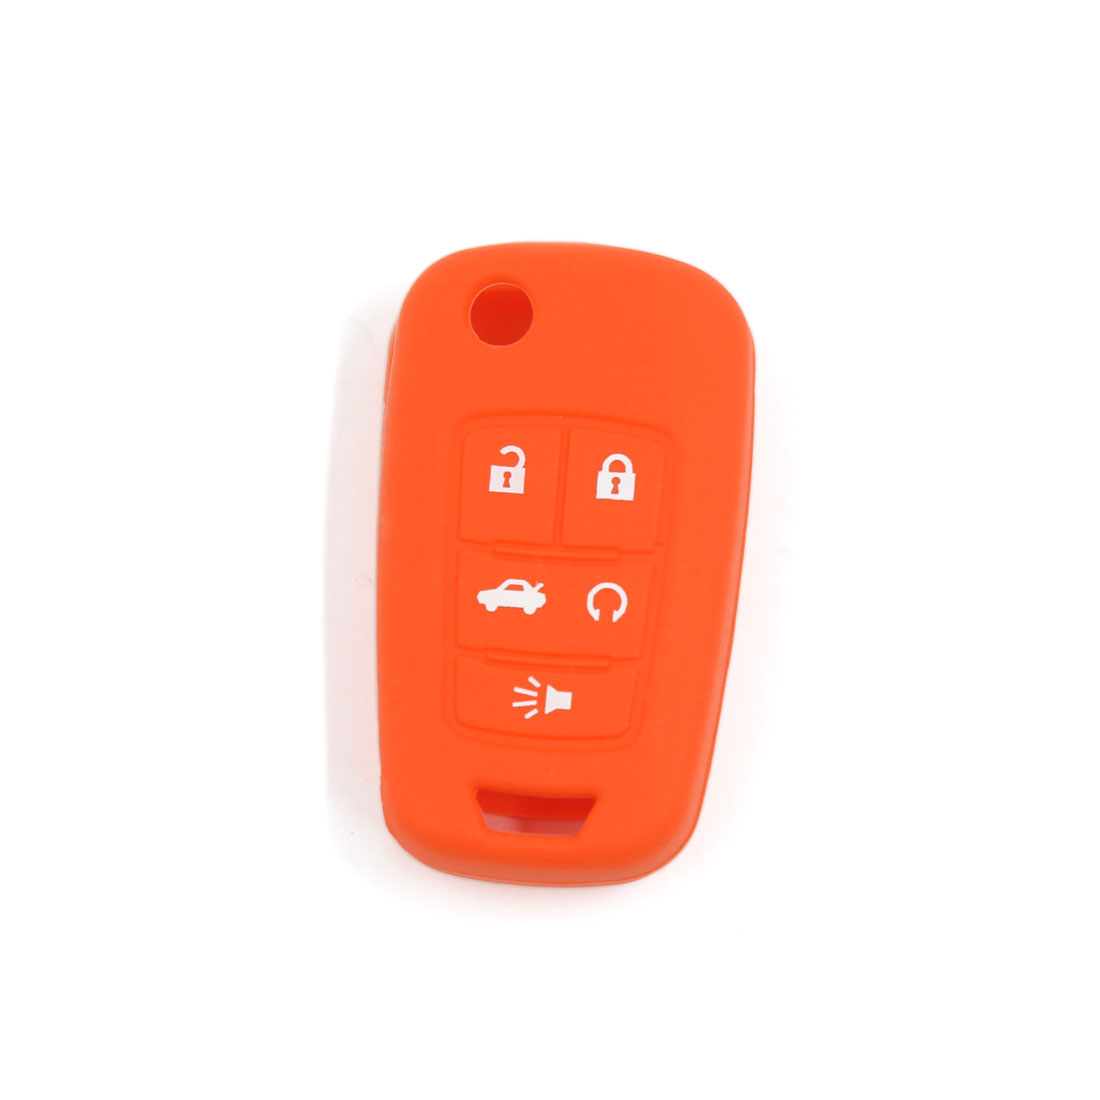 Orange Silicone Cover Case Fit for Buick Lacrosse Regal Remote Key 5 Buttons